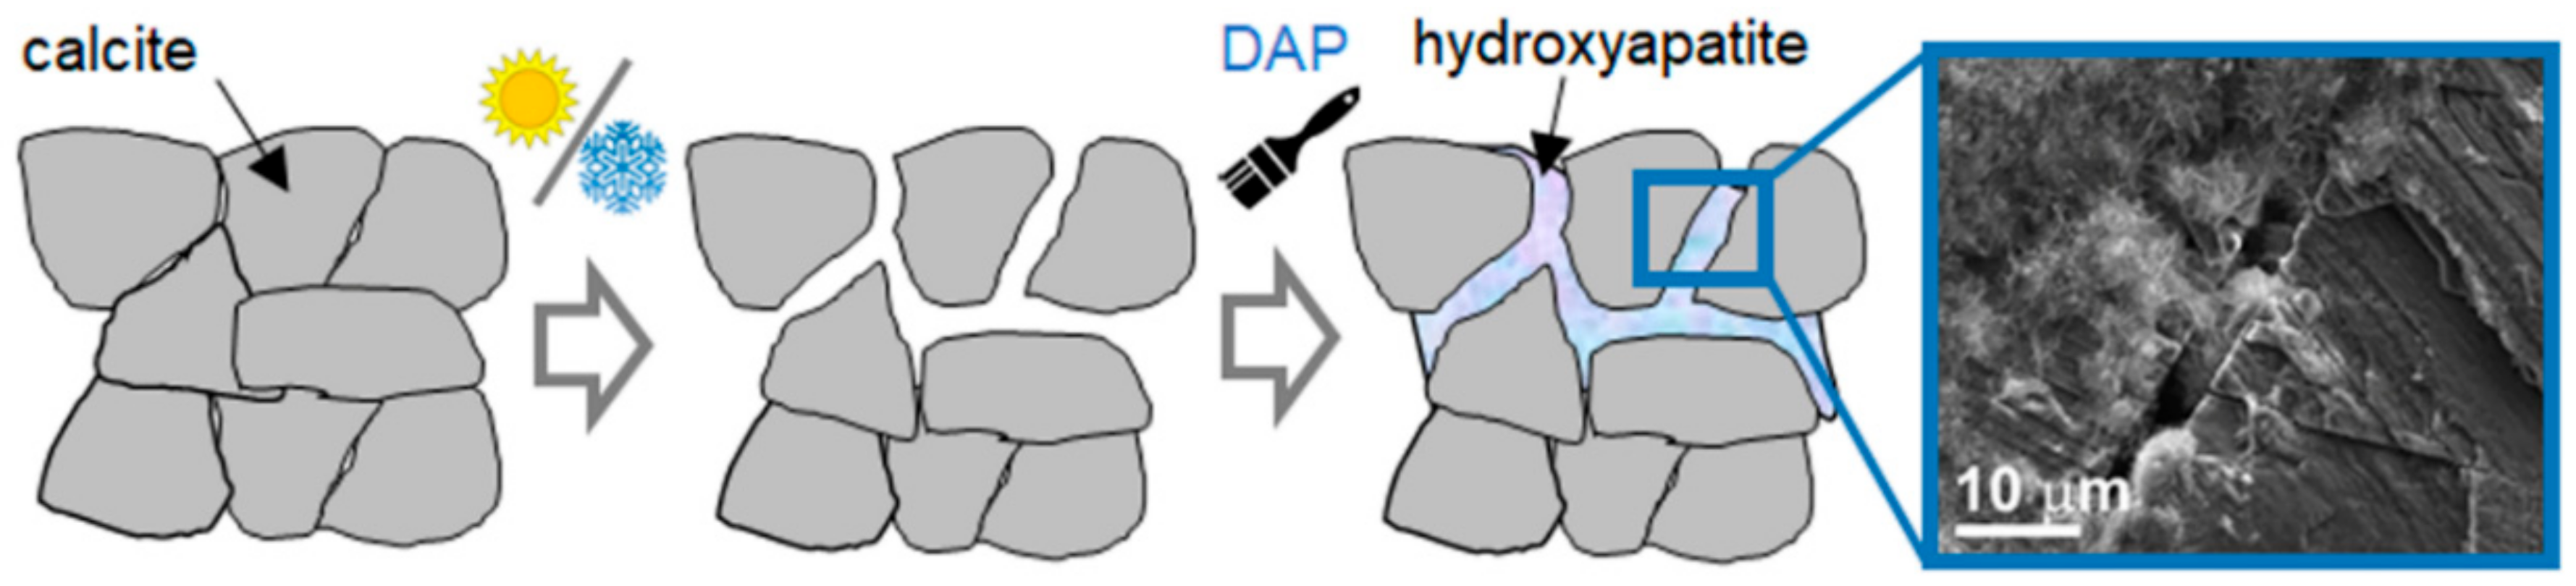 Materials   Free Full-Text   Hydroxyapatite and Other